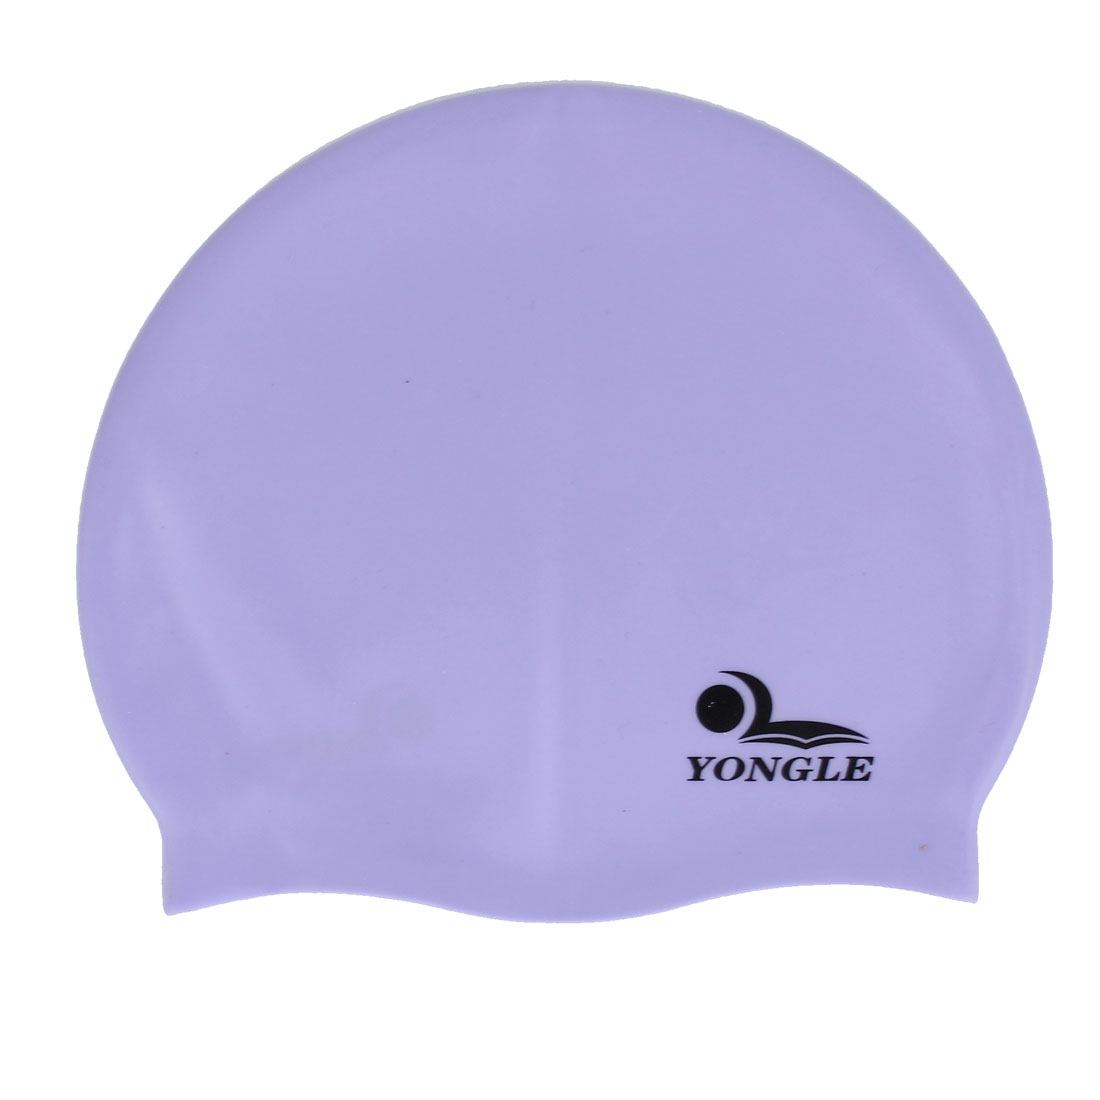 Ladies Men Dome Design Stretch Head Band Silicone Swimming Cap Hat Purple